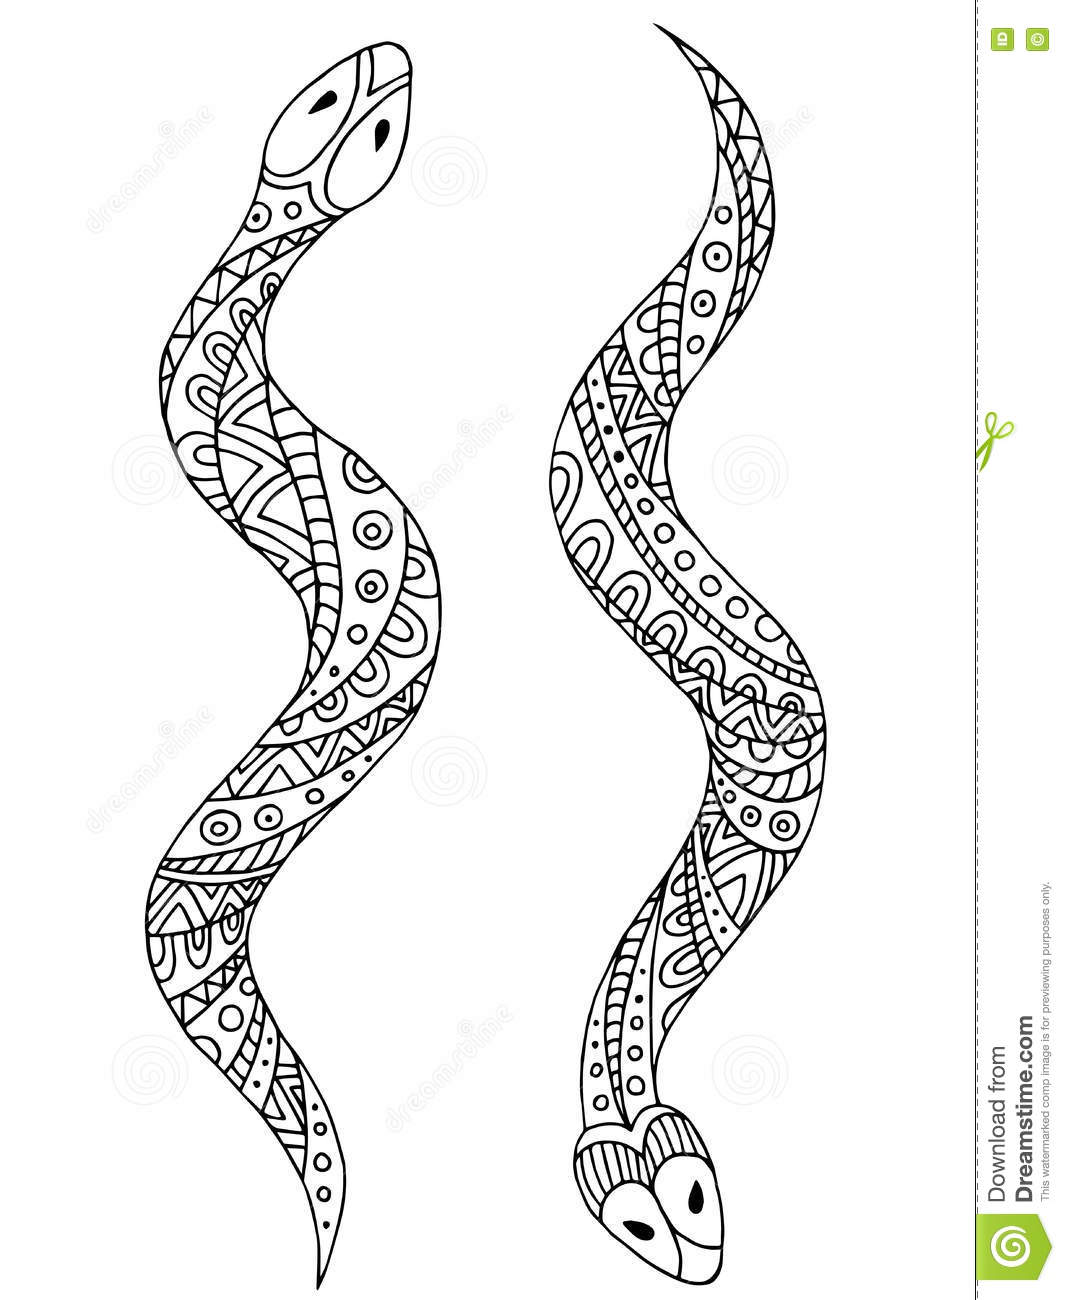 how to make a snake on illustrator